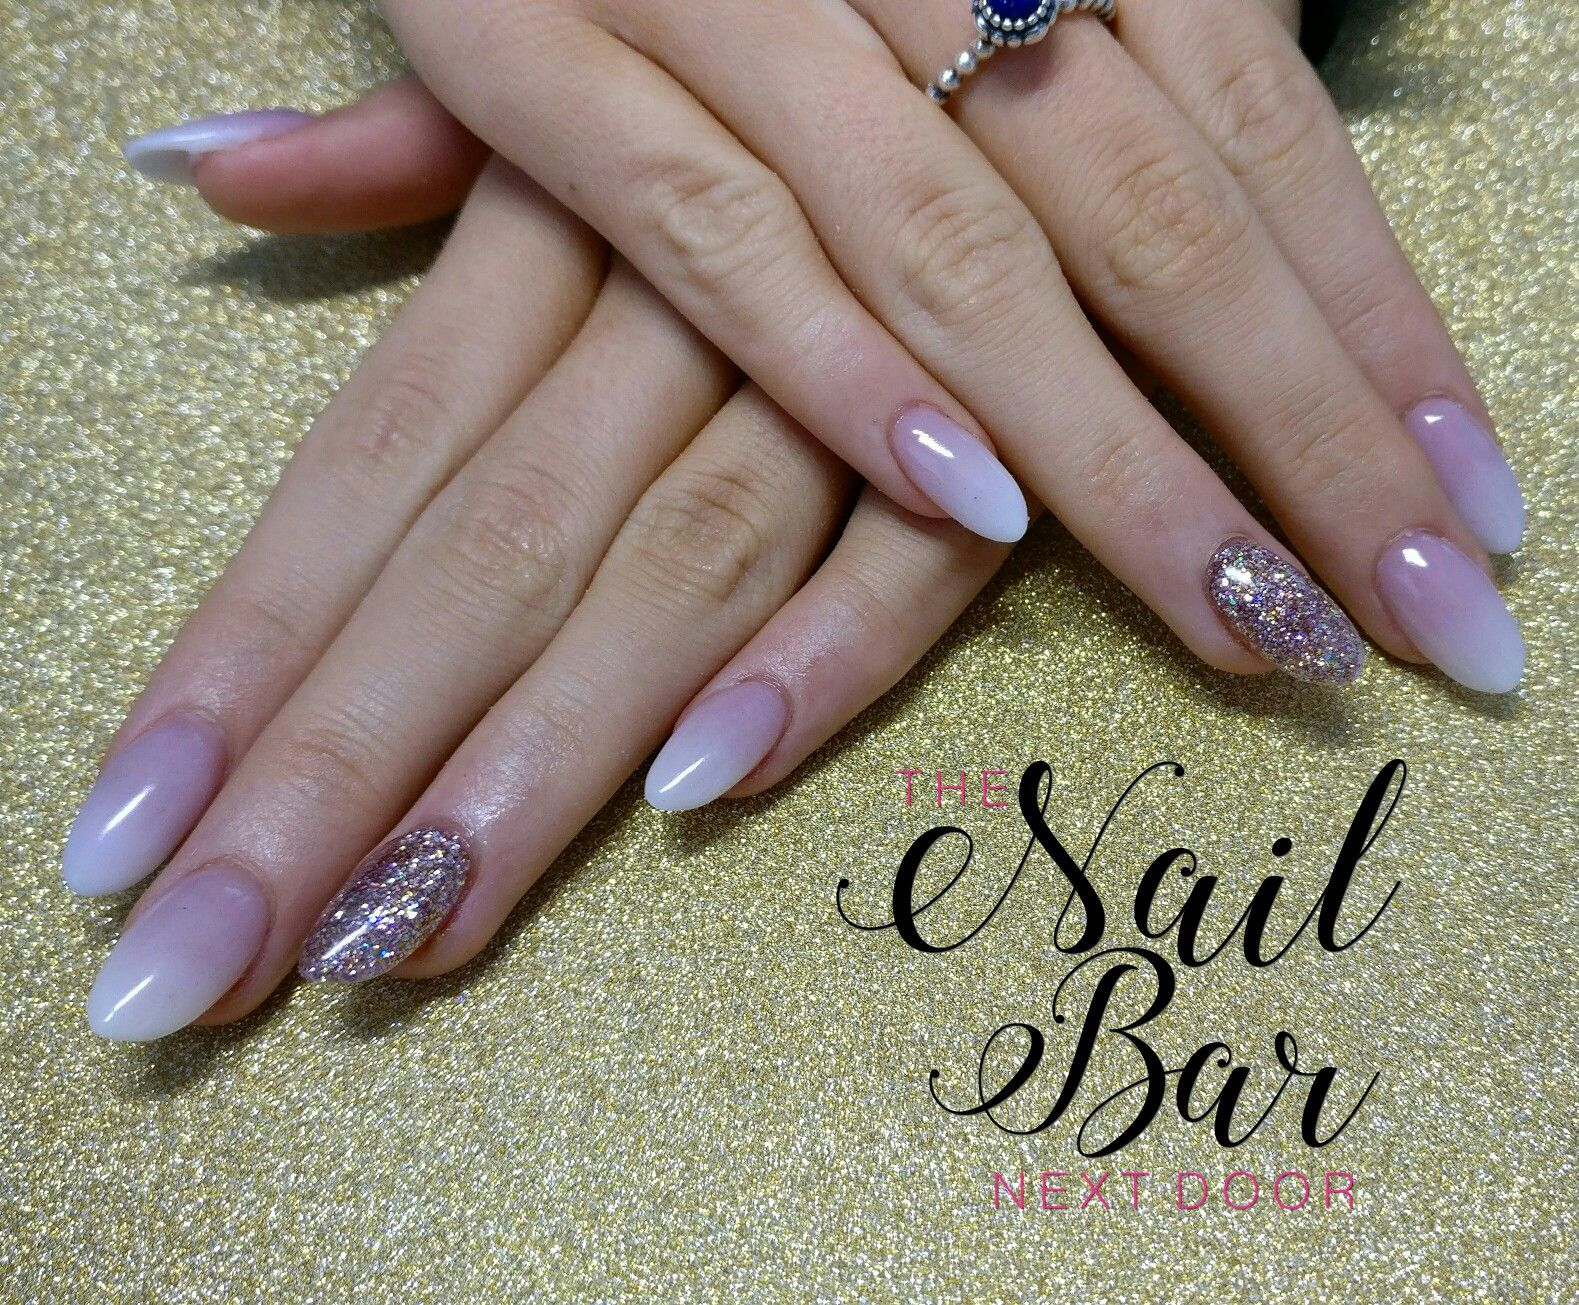 Baby boomer and rose gold acrylic nails | Ongle | Pinterest